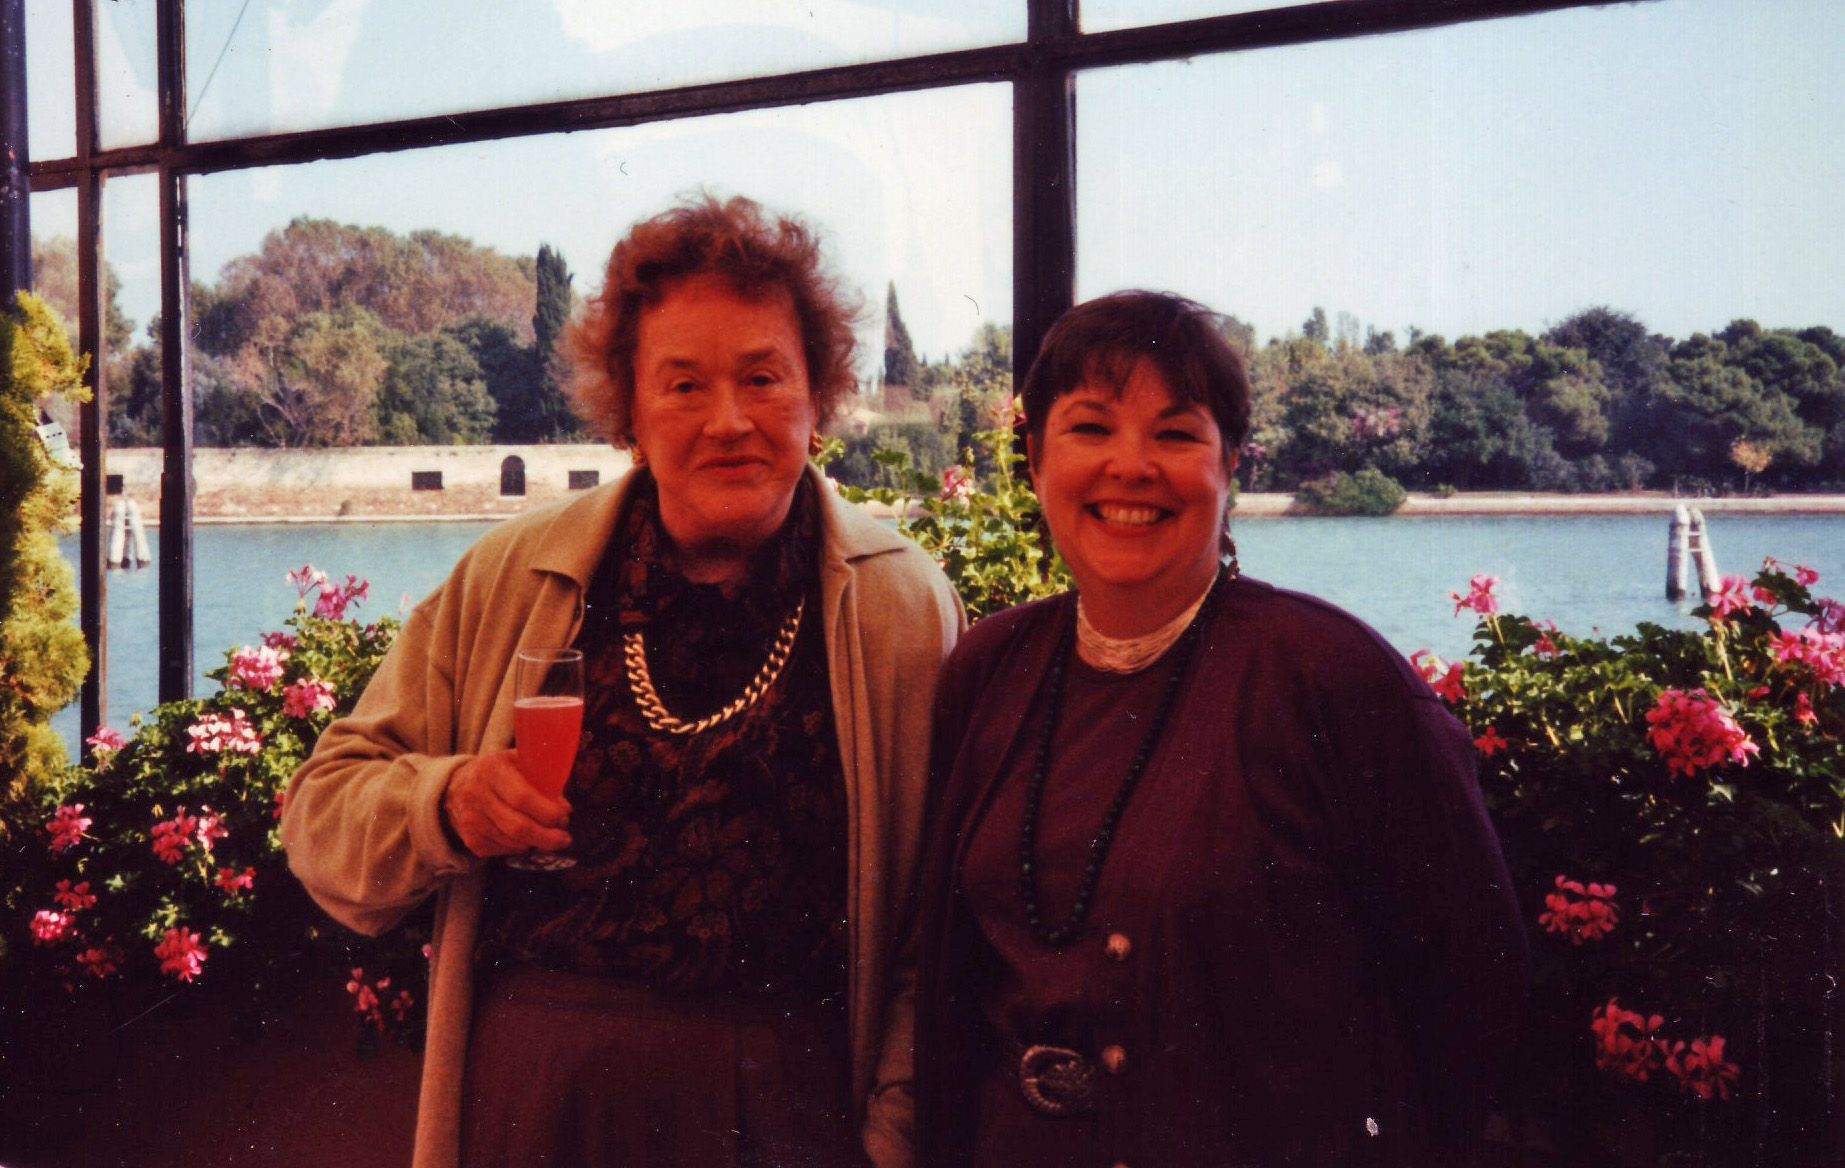 "In two consecutive Octobers, 1994 and 1995, Patty Delony had the exceptional pleasure of taking cooking classes with Julia Child at the elegant Cipriani Hotel in Venice. Julia was just as fun and charming as everyone always said. One of the most memorable moments was when, standing at the front of the room teaching the class, Julia looked around the room and said in that inimitable voice, ""Well, it appears that everyone but me has a glass of wine!"" - submitted by Toria Emas"